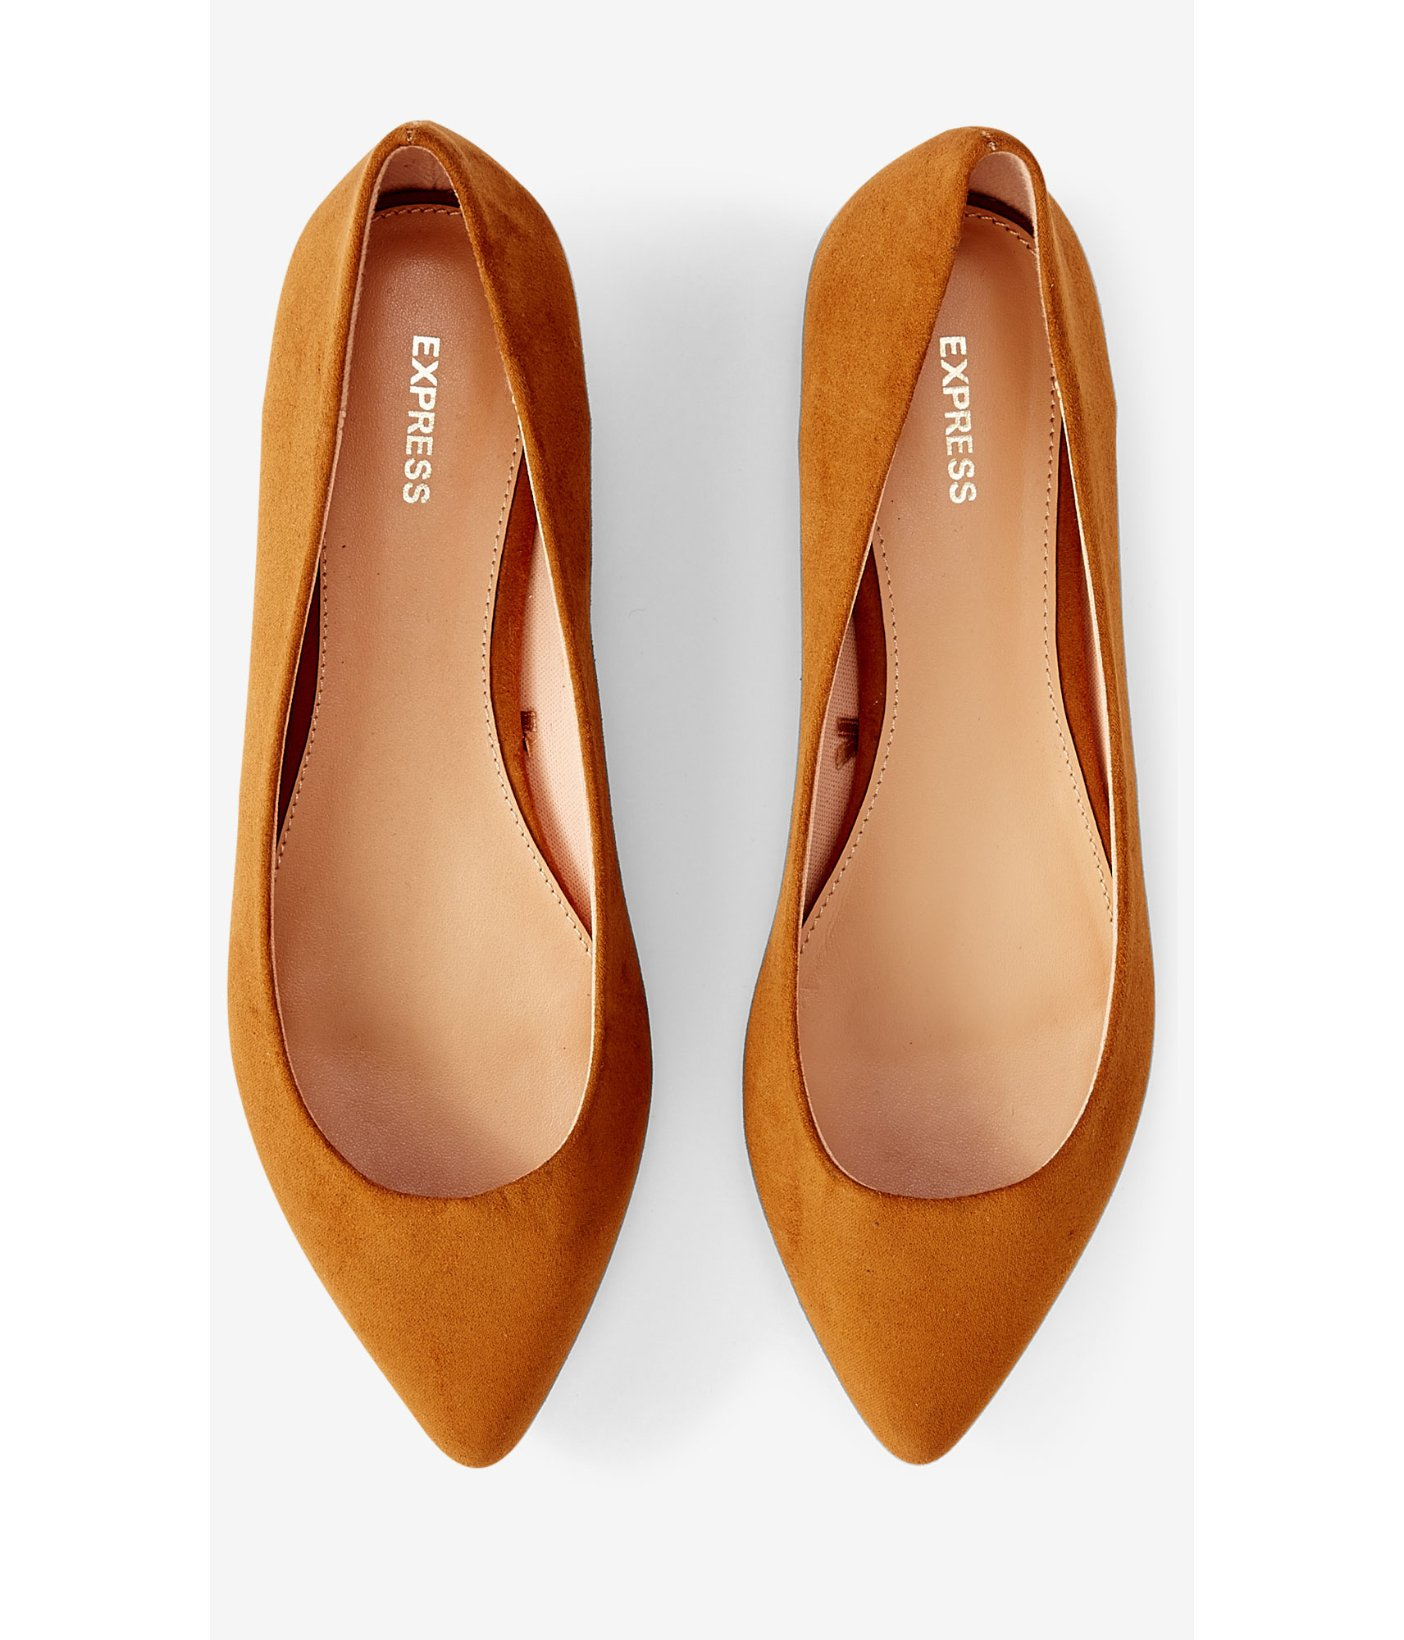 Express Cognac Faux Suede Pointed Toe